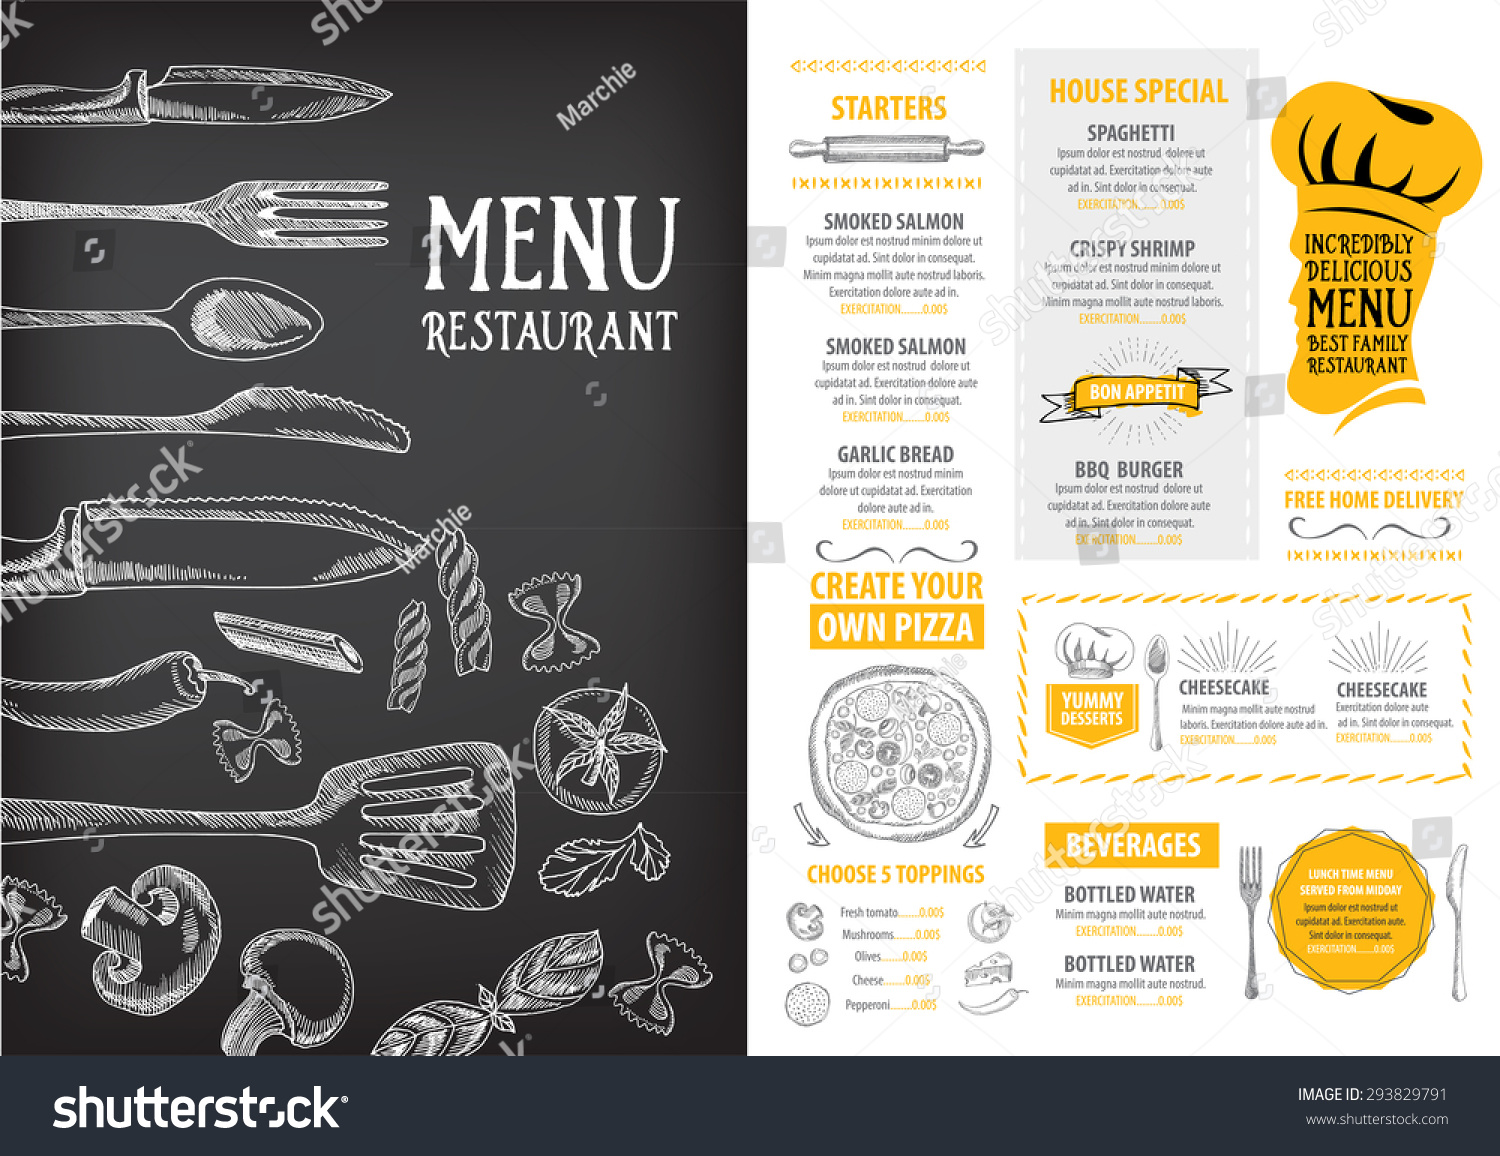 Restaurant menu template xi regardsdefemmes